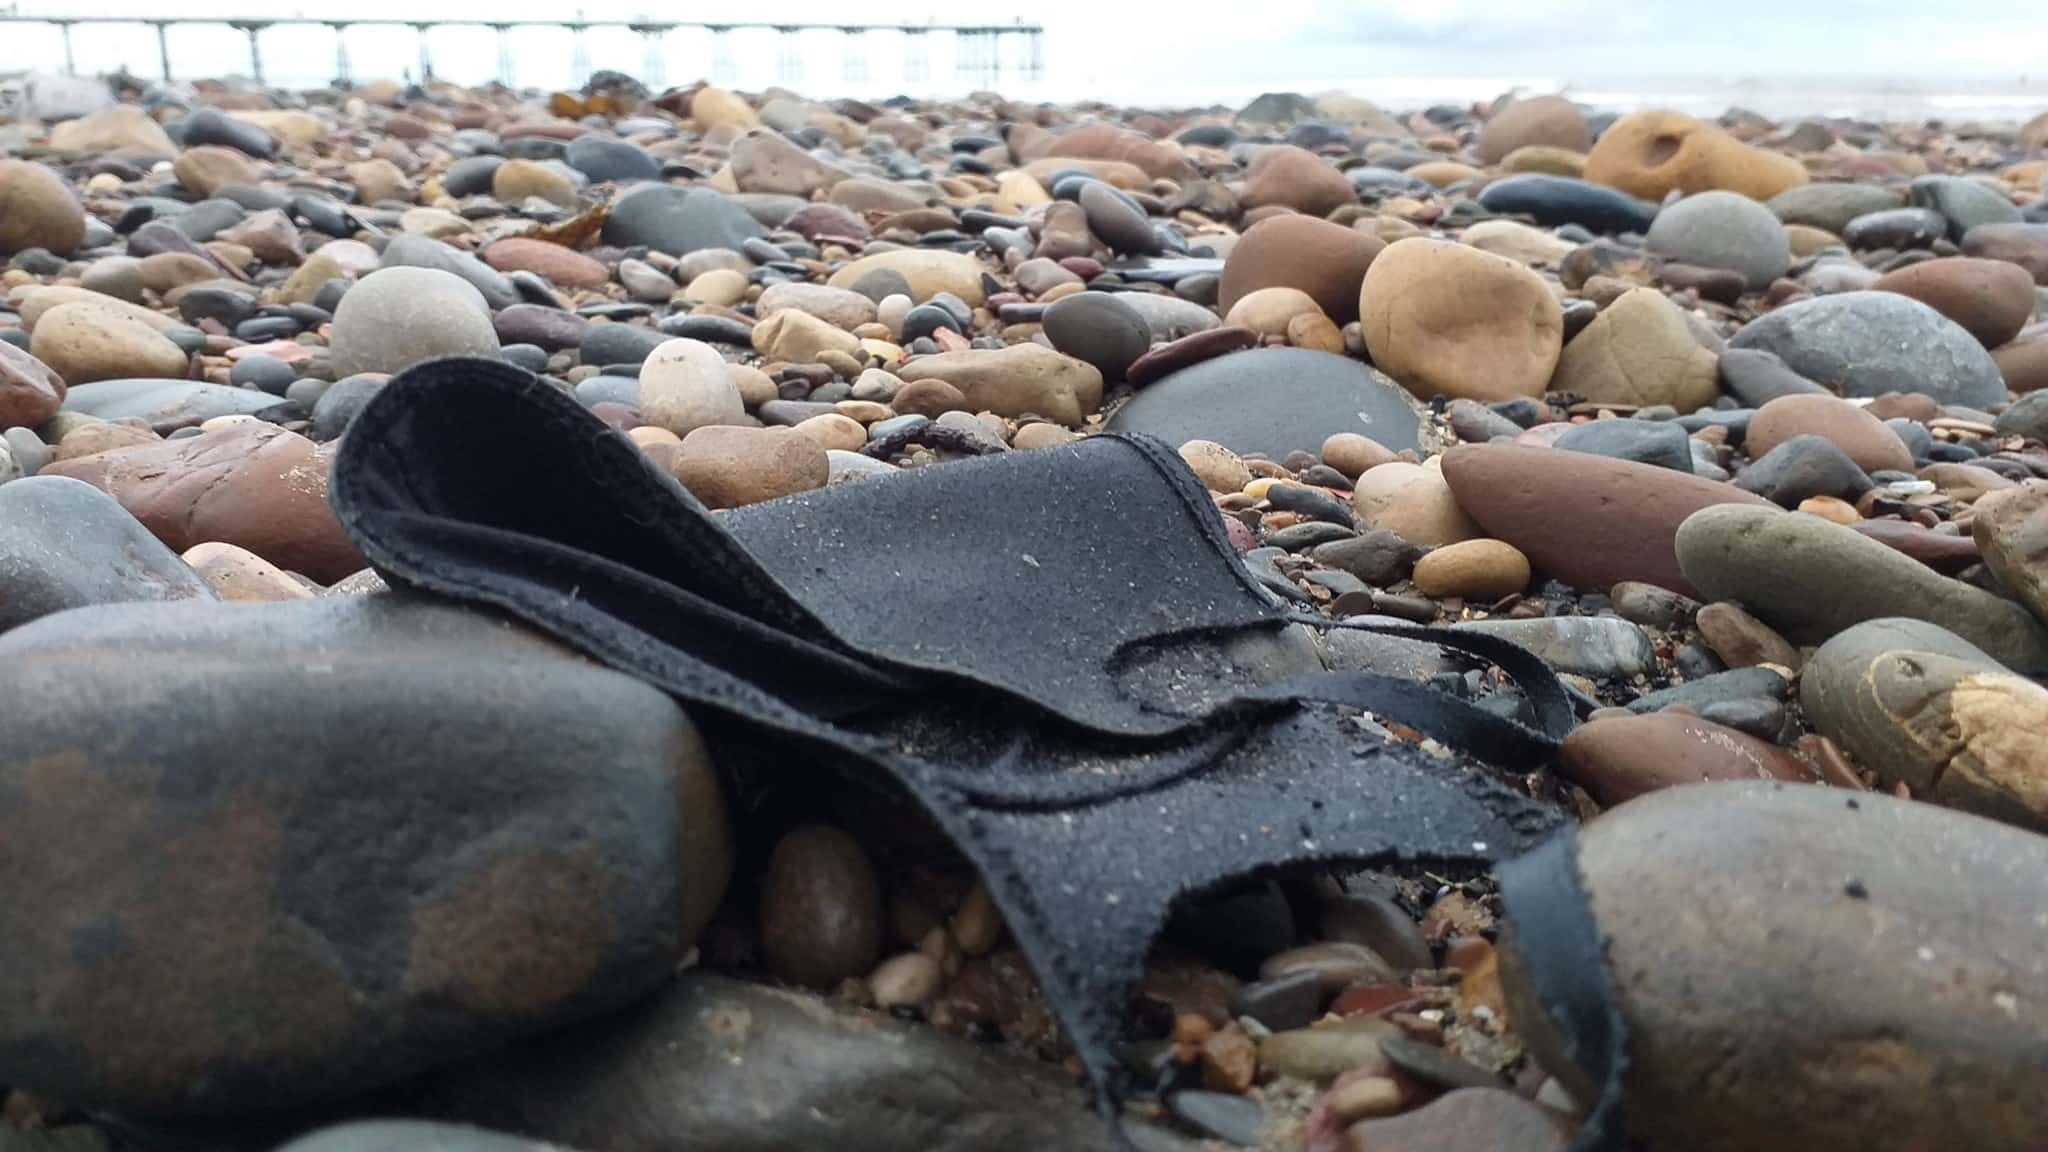 Photo of discarded black face mask on beach